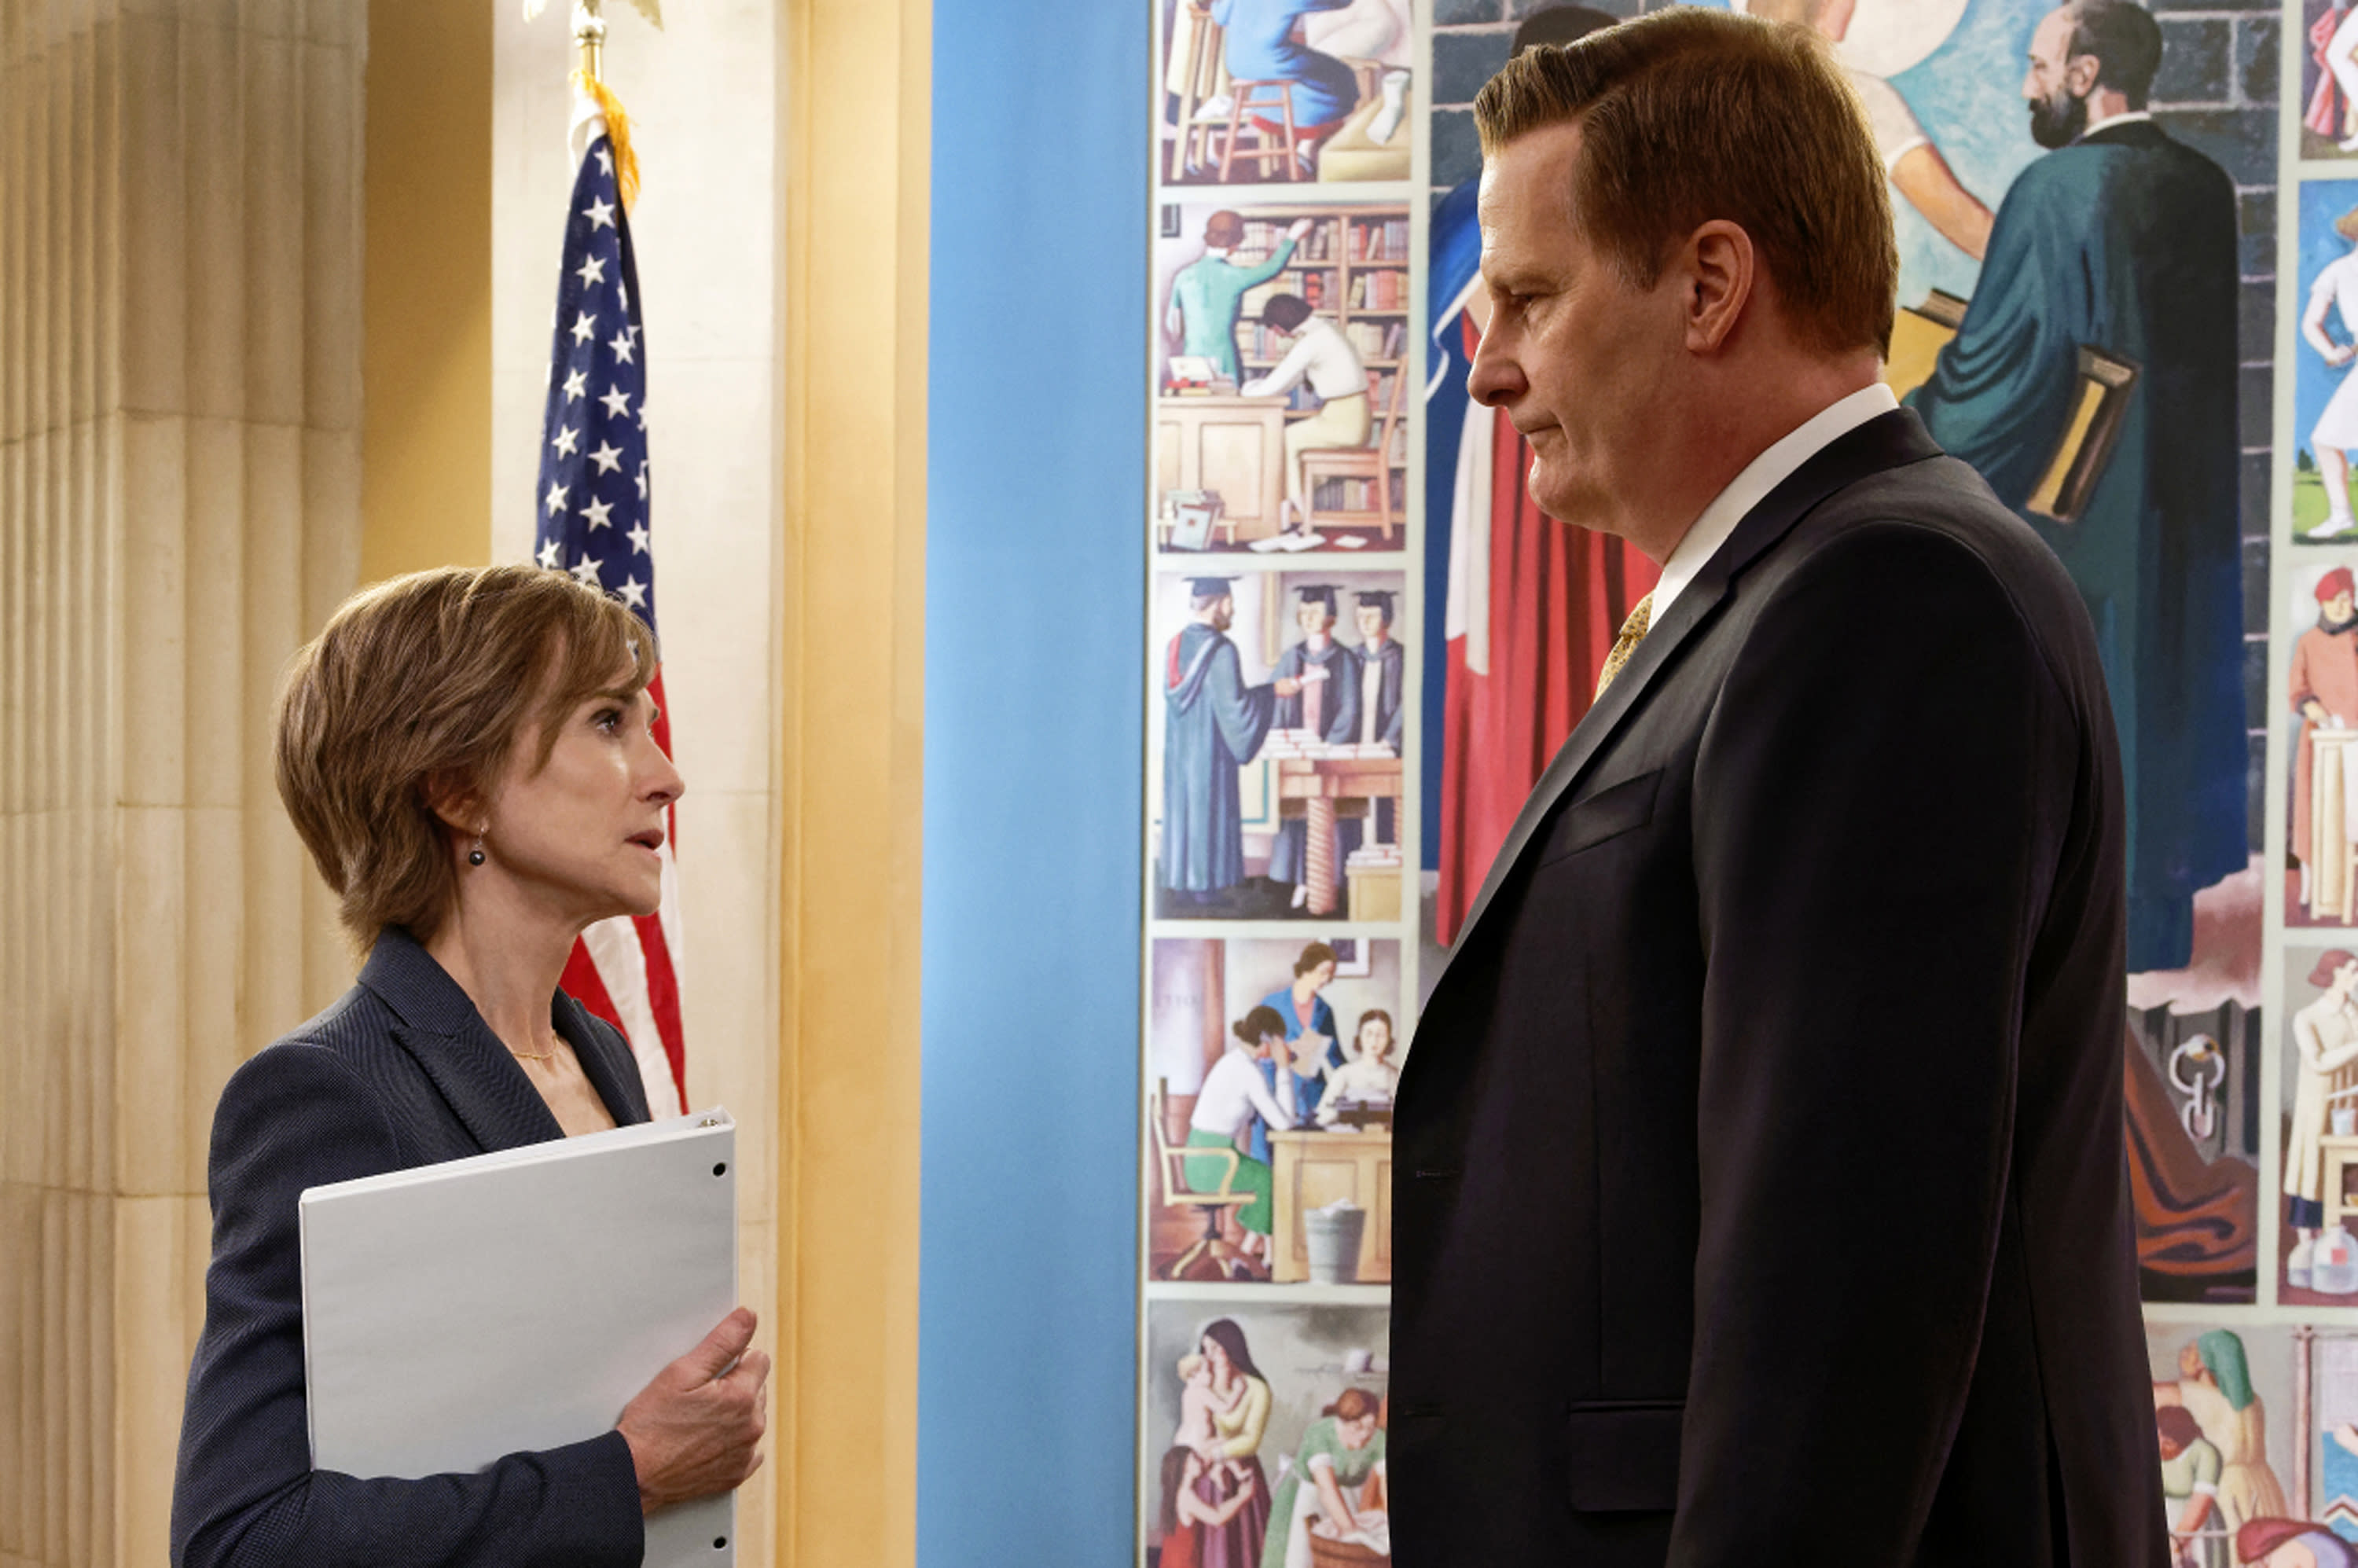 """This image provided by Showtime shows Holly Hunter, left, as Sally Yates and Jeff Daniels as James Comey in a scene from """"The Comey Rule."""" Hunter plays former federal prosecutor Sally Yates in Showtime's two-part drama, debuting Sunday and Monday, Sept. 27 and 28. (Ben Mark Holzberg/CBS Television Studios/Showtime via AP)"""